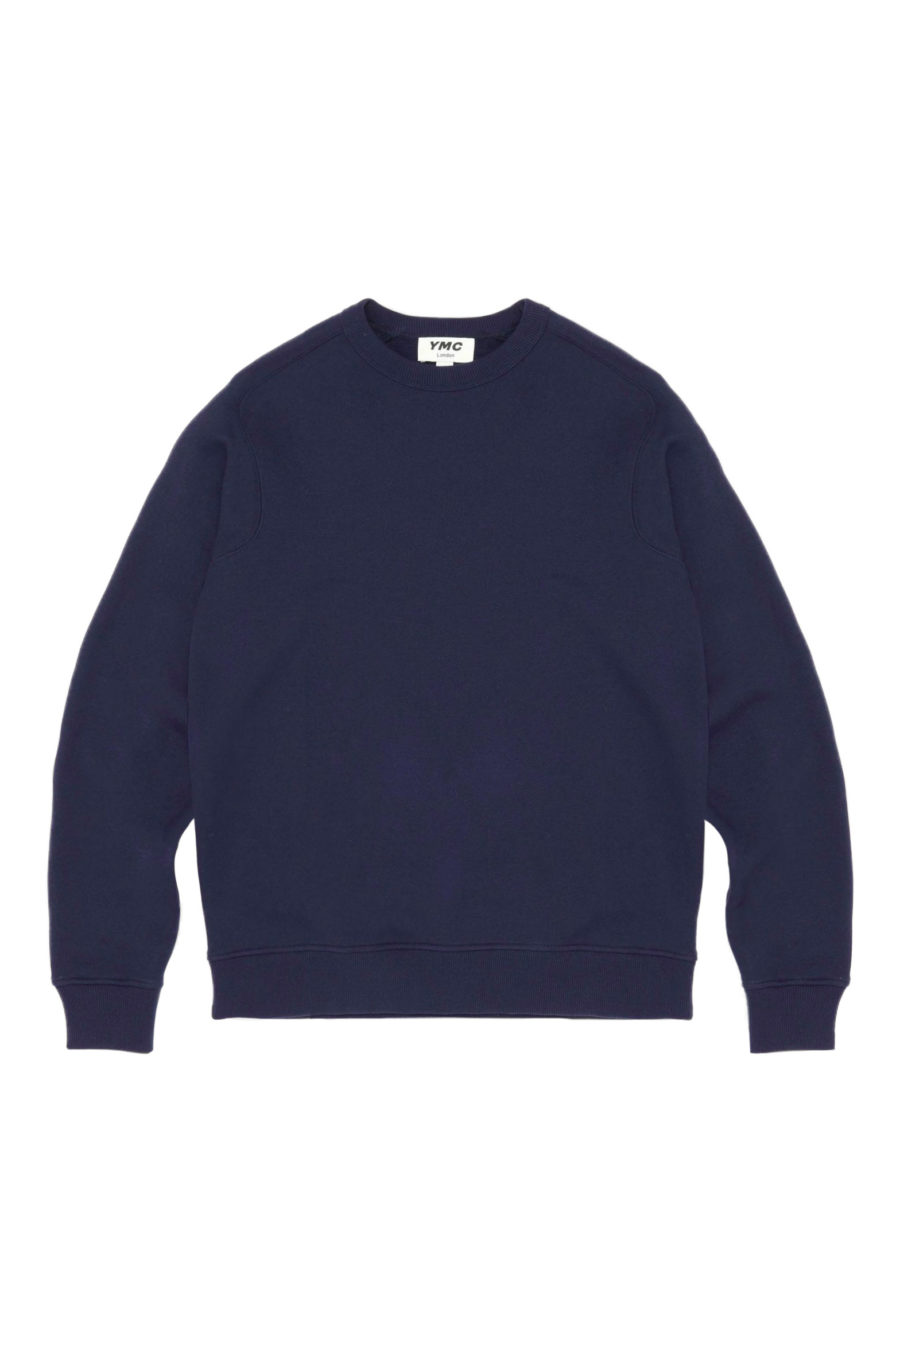 ALMOST GROWN COTTON SWEATSHIRT